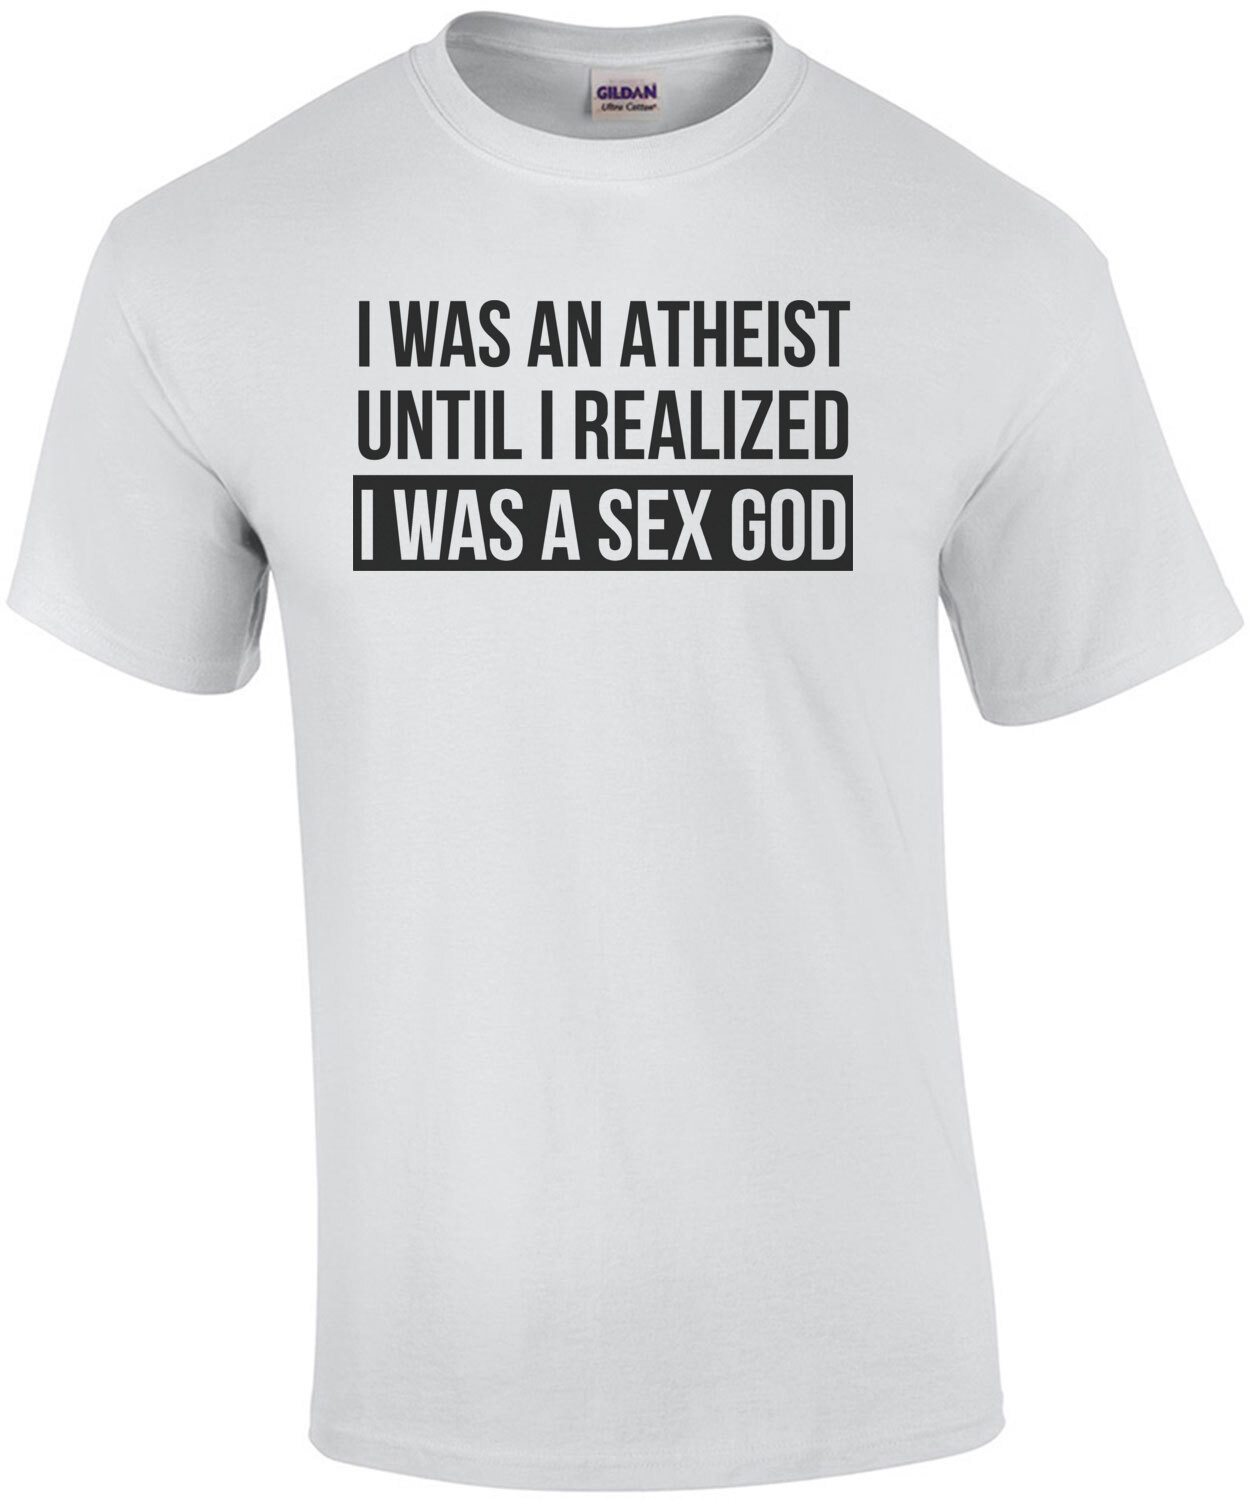 I was an atheist until I realized I was a sex god - funny t-shirt